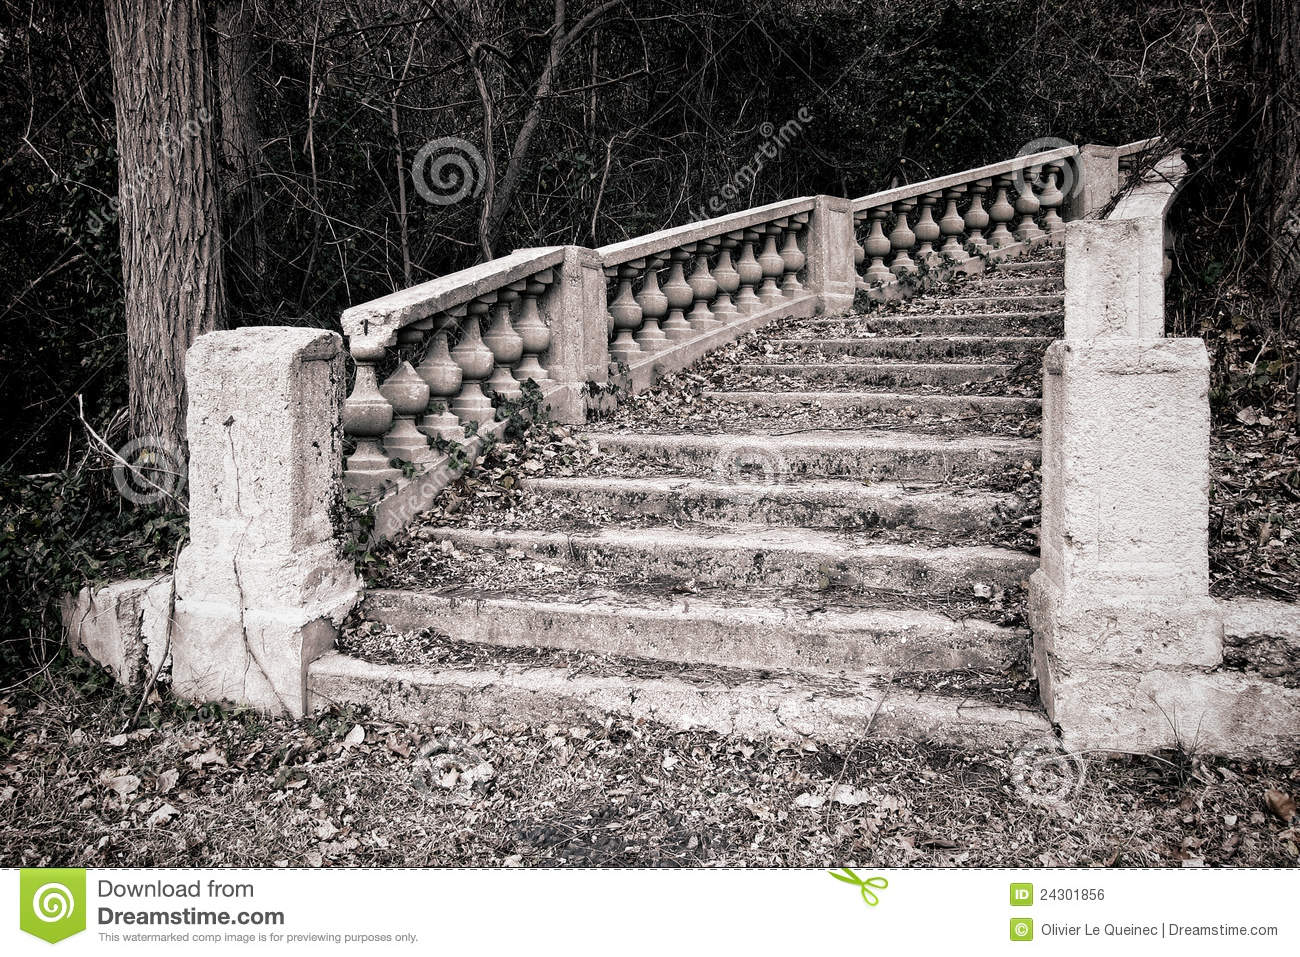 abandoned monumental staircase in overgrown woods royalty tree stump clipart black and white tree stump clipart images